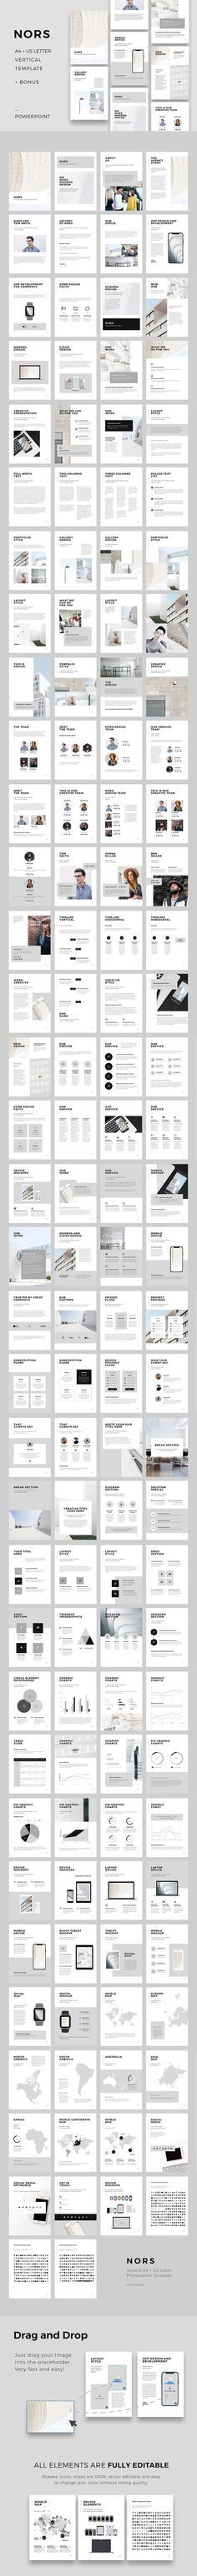 NORS Vertical Powerpoint + 20 Photos by PixaSquare on @creativemarket